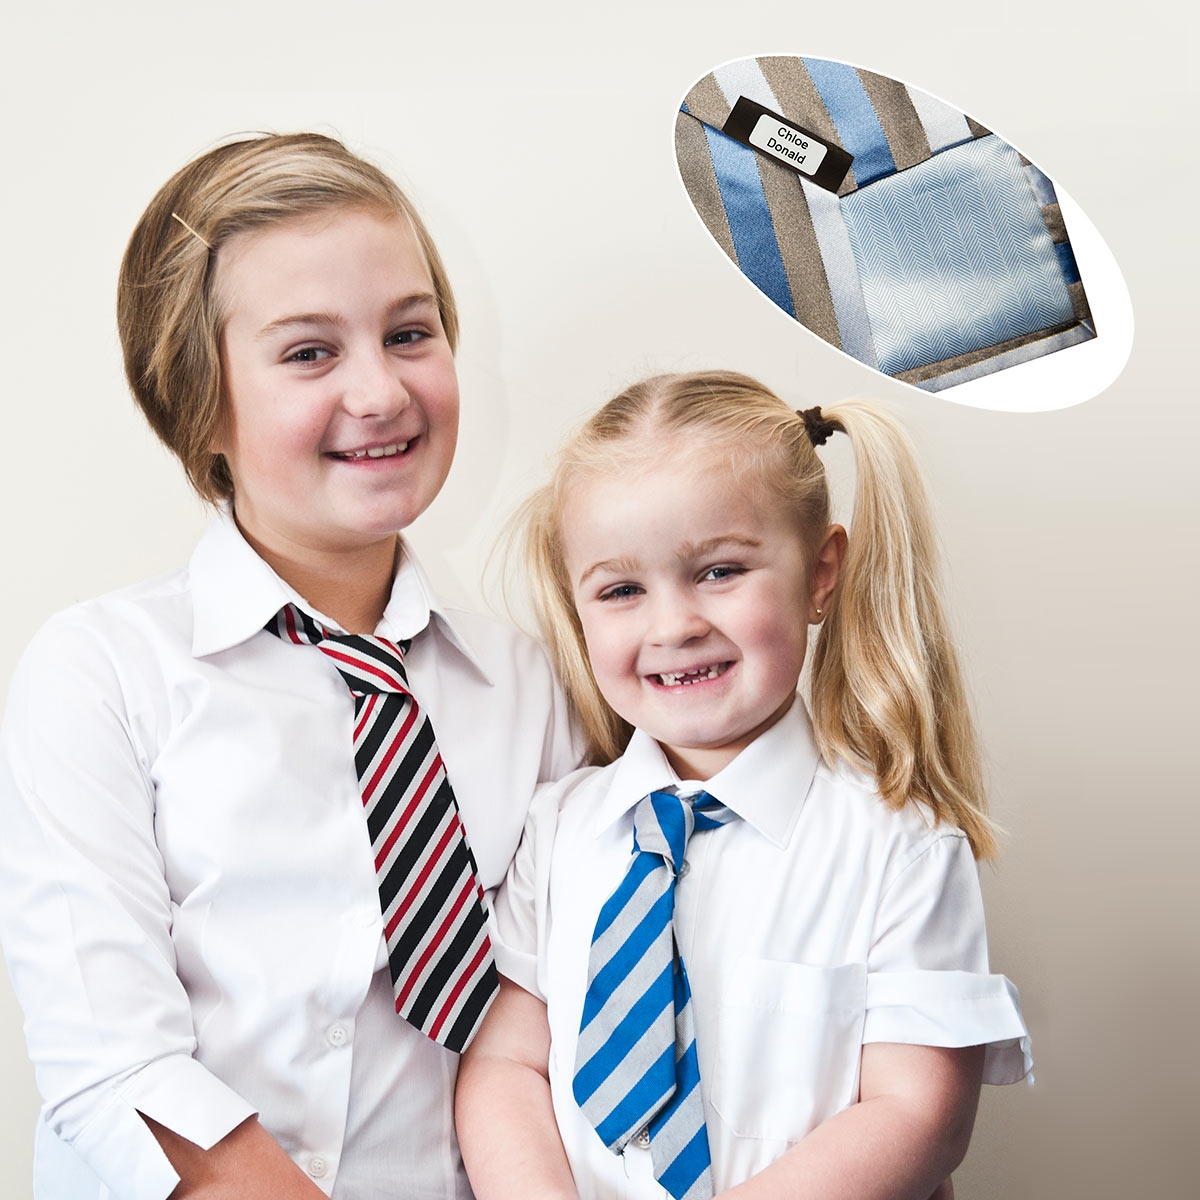 School uniform labels